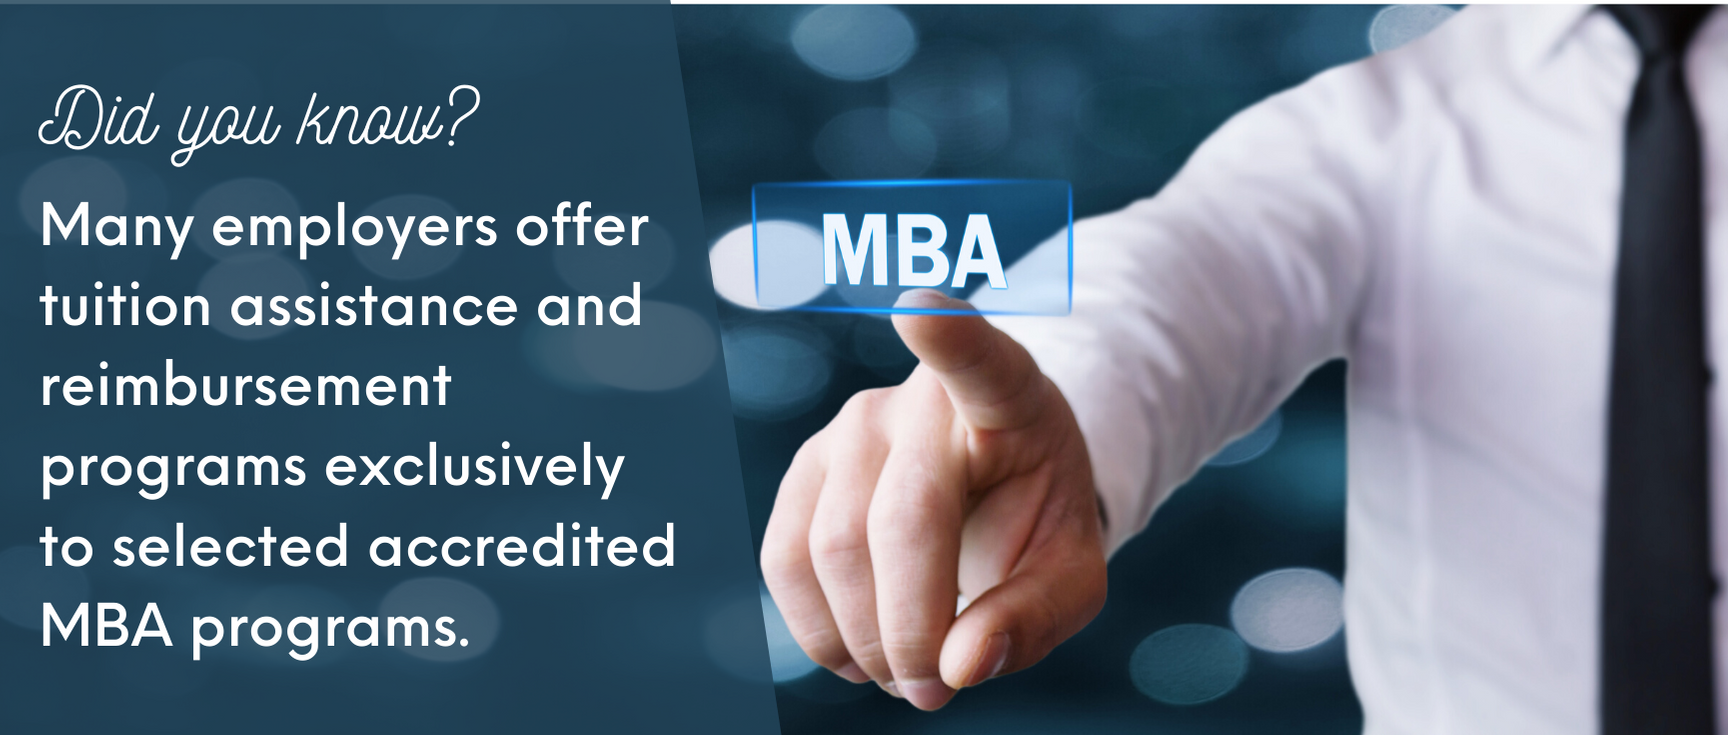 MBA accreditation fact 5